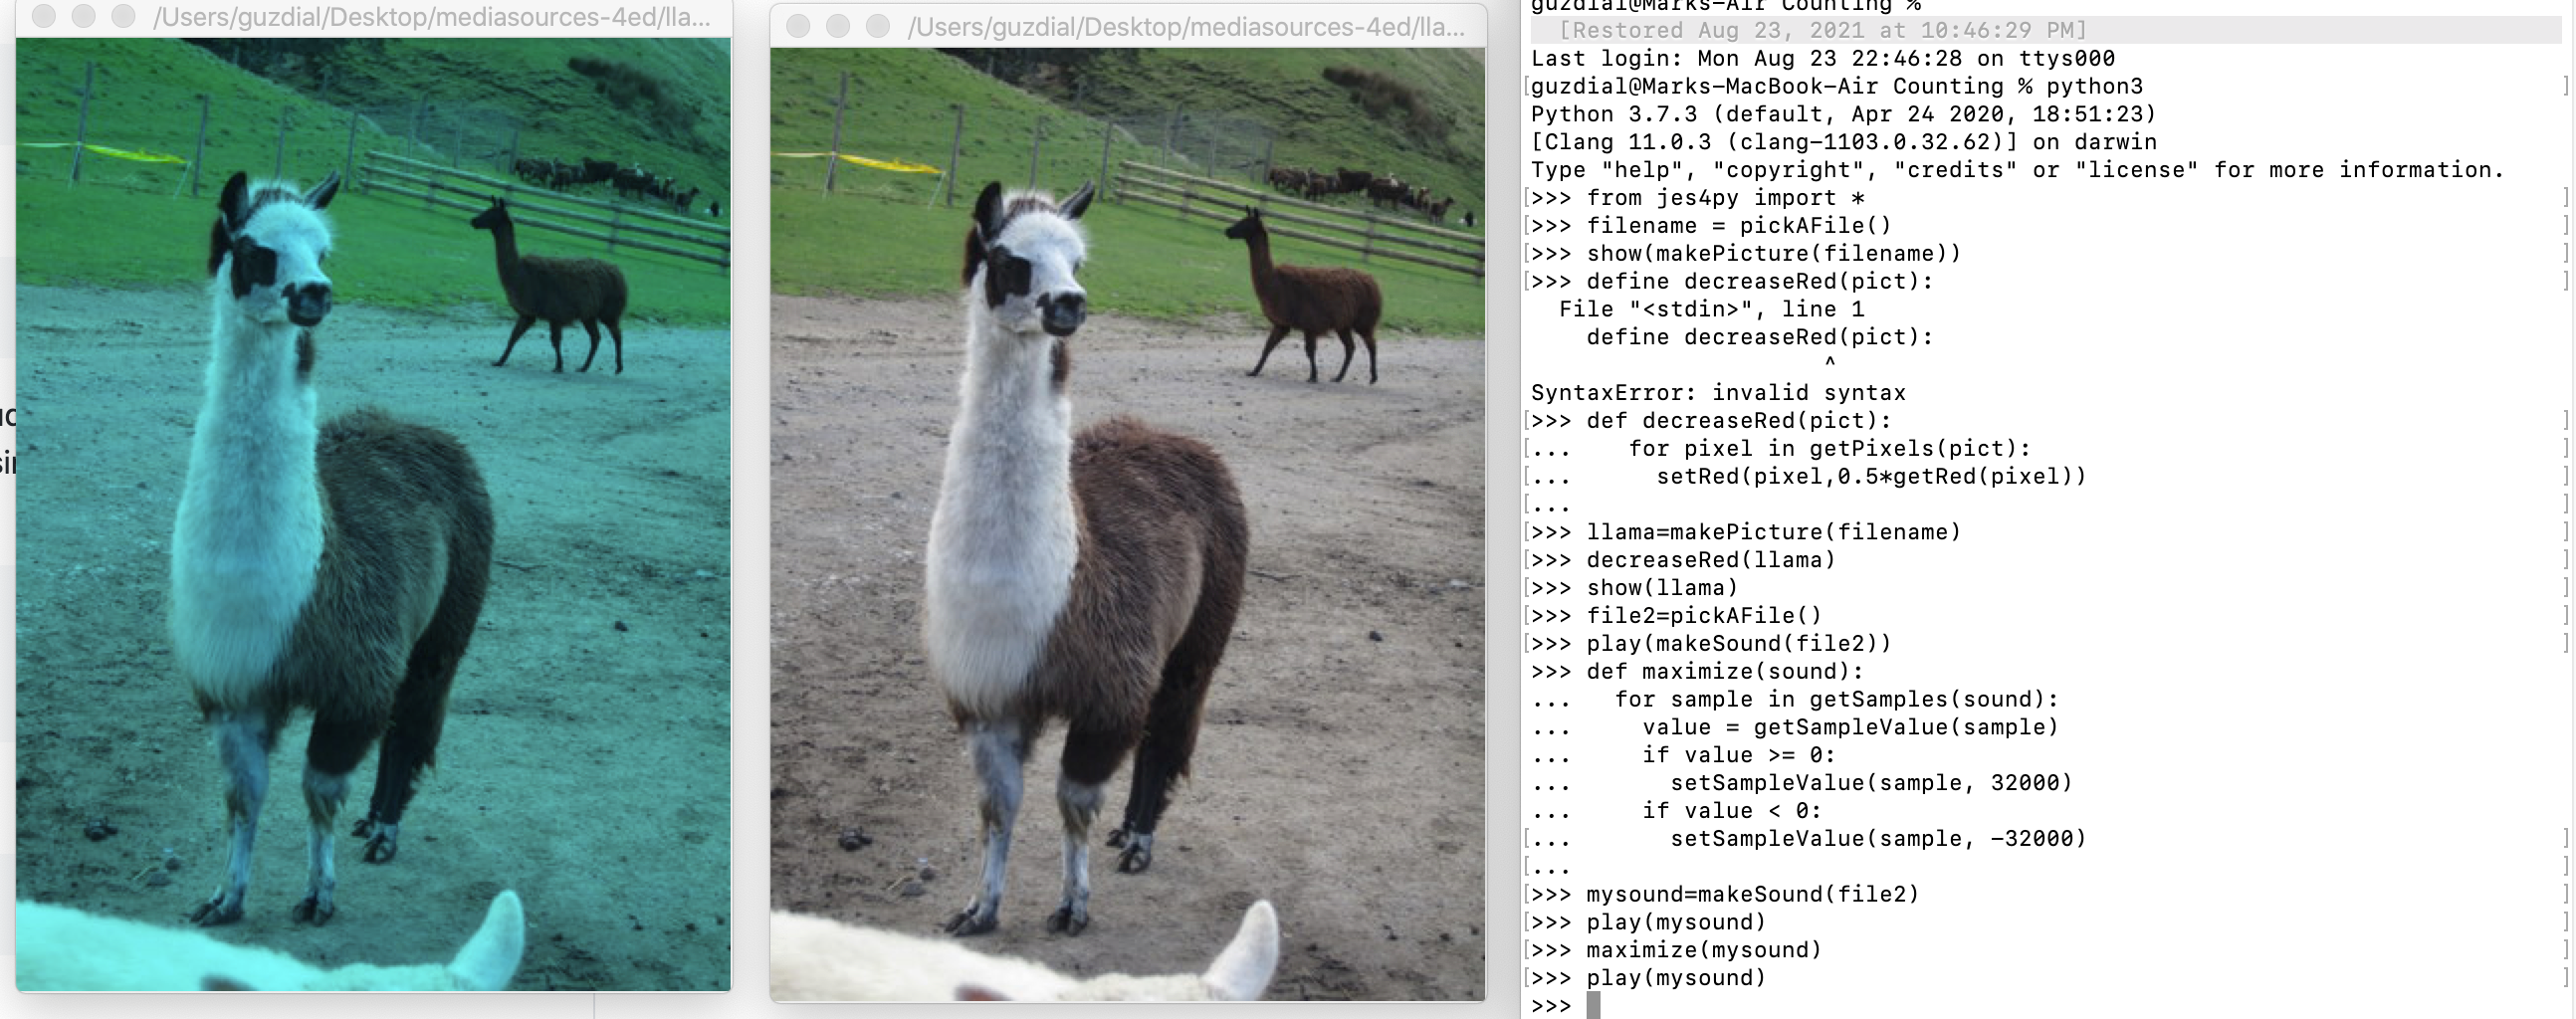 On the right is Python 3 code doing Media Computation. On the left are two images -- the original in the middle, and a red-reduced image on the far left.